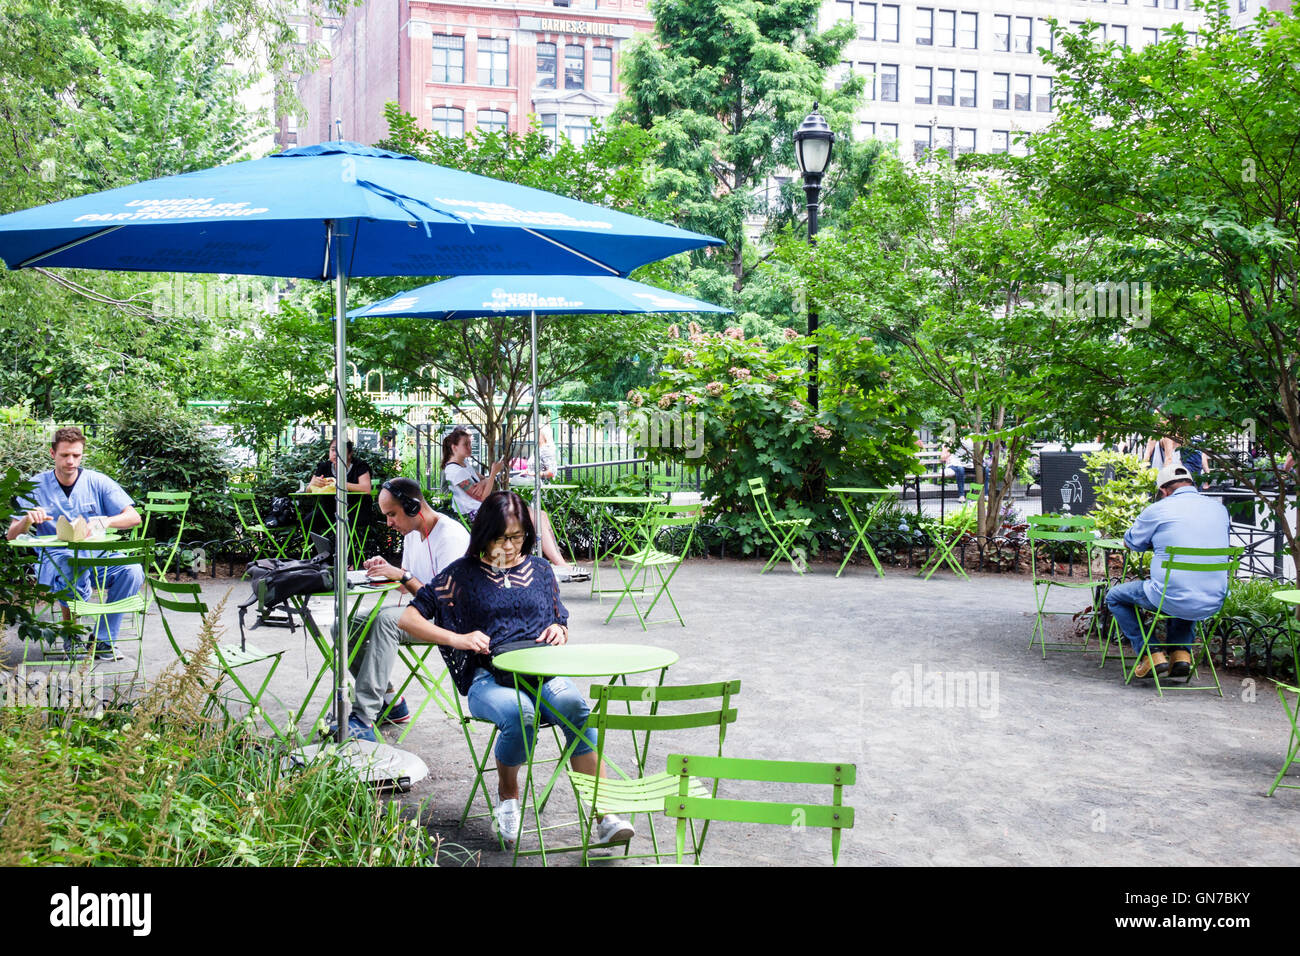 Manhattan New York City NYC NY Midtown Union Square Park public park outdoor seating green space vegetation table Stock Photo